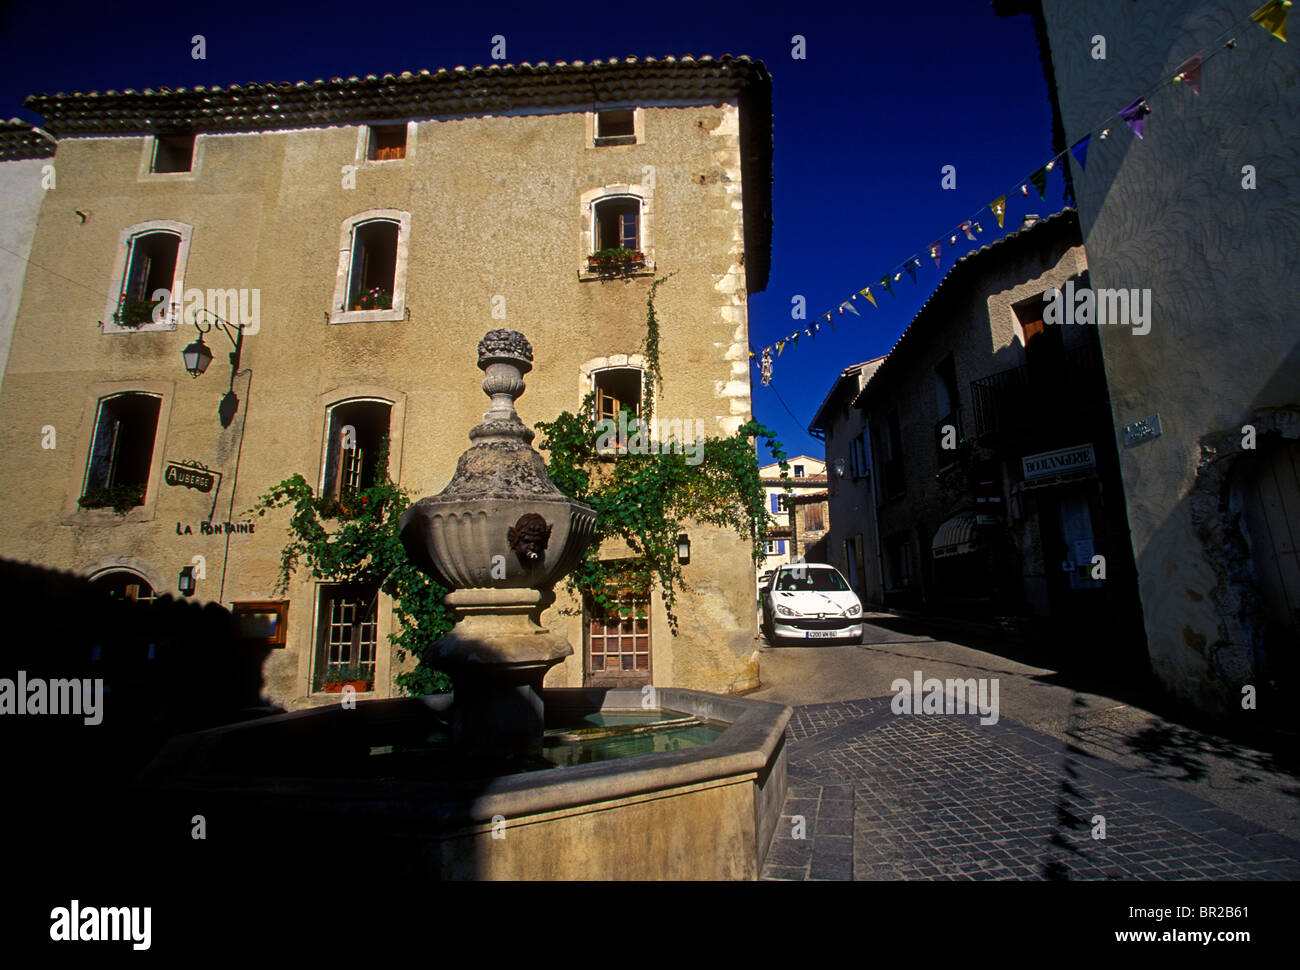 water fountain drinking water potable water place de la fontaine stock photo 31400153 alamy. Black Bedroom Furniture Sets. Home Design Ideas